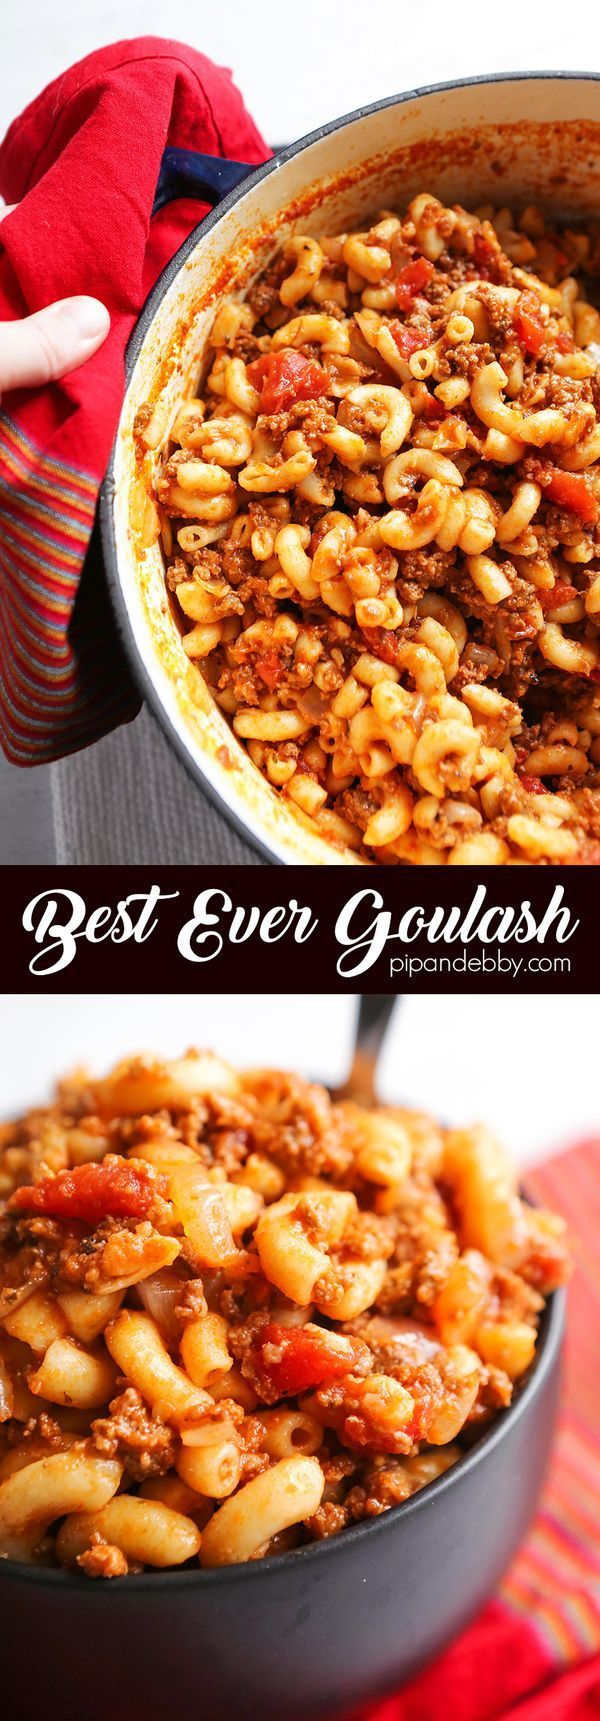 American Goulash Best EVER Goulash | This Goulash is the most comforting of all comfort food. It is warm, delicious, filling, irresistible and easy to prepare. It is the perfect weeknight family meal!Best EVER Goulash | This Goulash is the most comforting of all comfort food. It is warm, delicious, filling, irresistible and easy to prepare. It is the p...